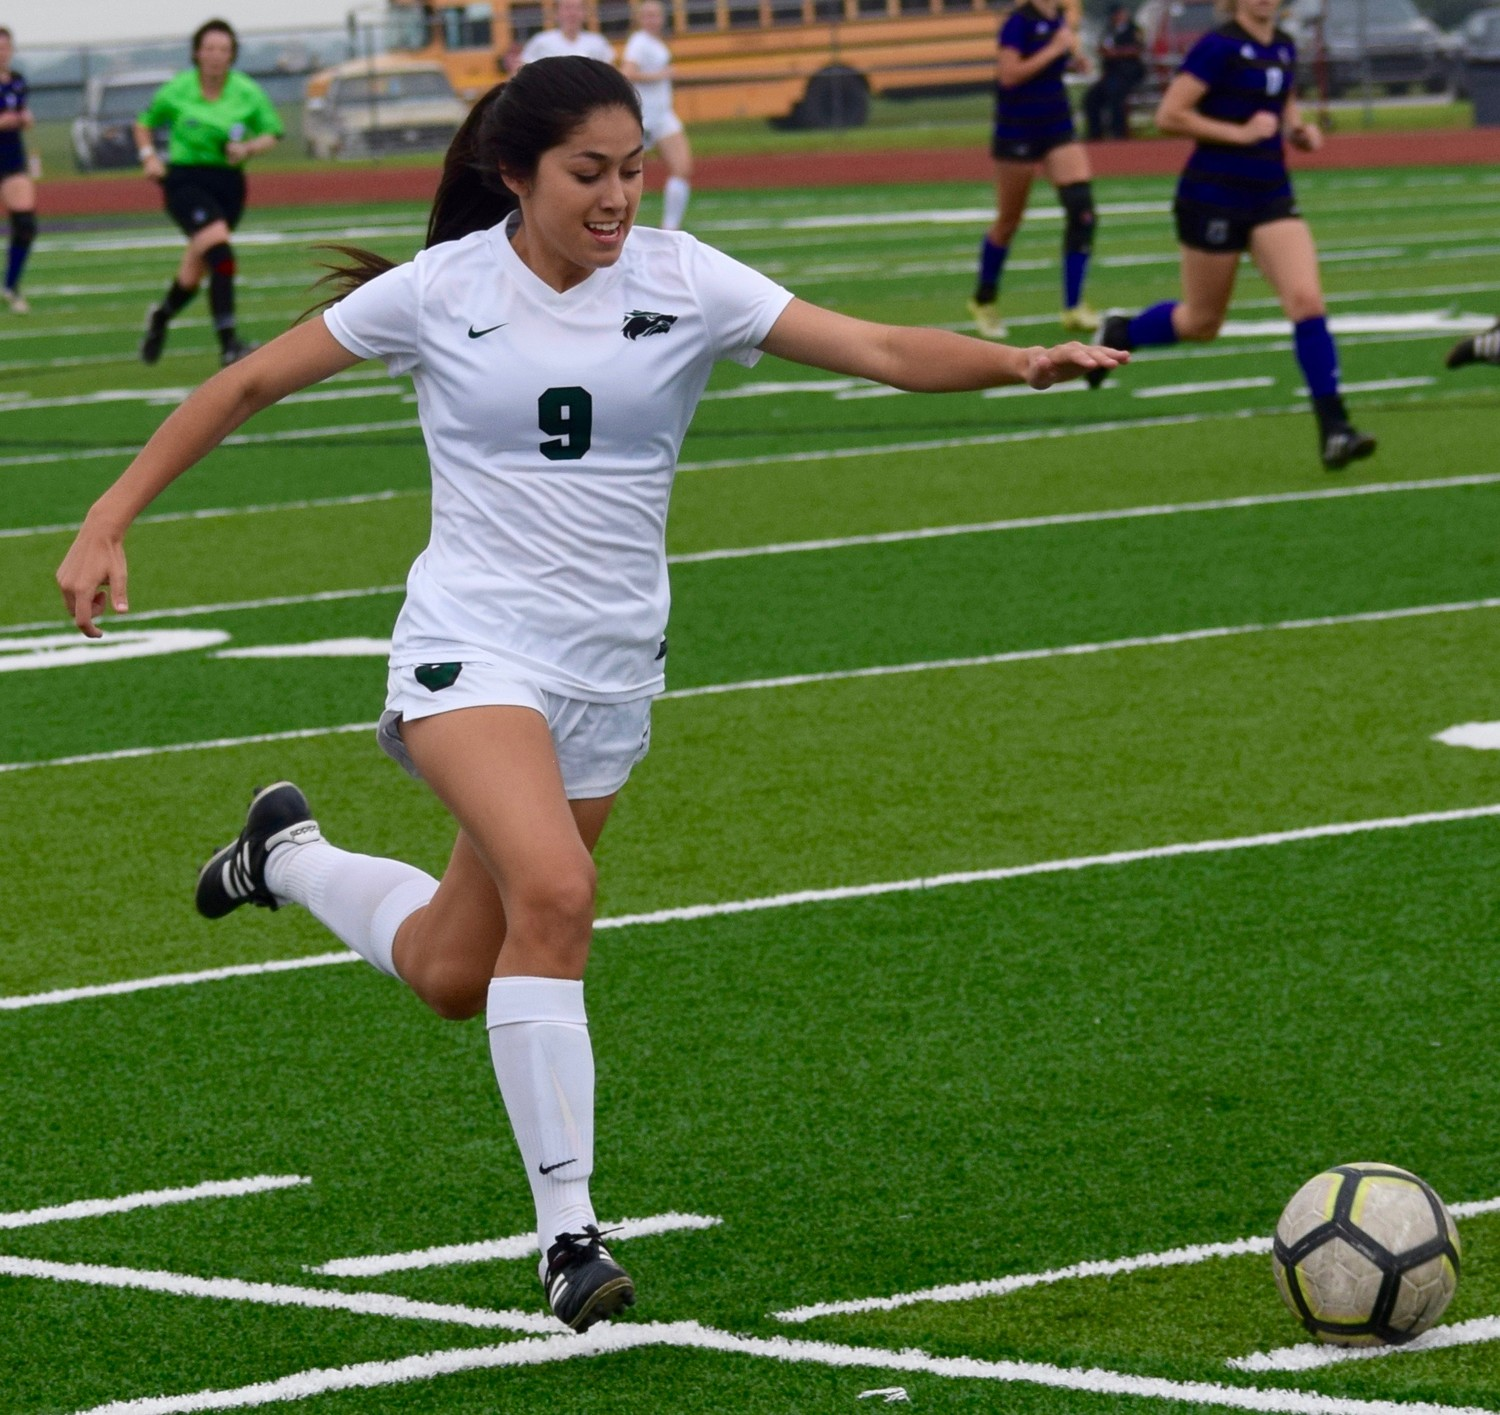 Maria Rico and Cedar Park beat College Station 2-1 in the third round of the playoffs Tuesday night.